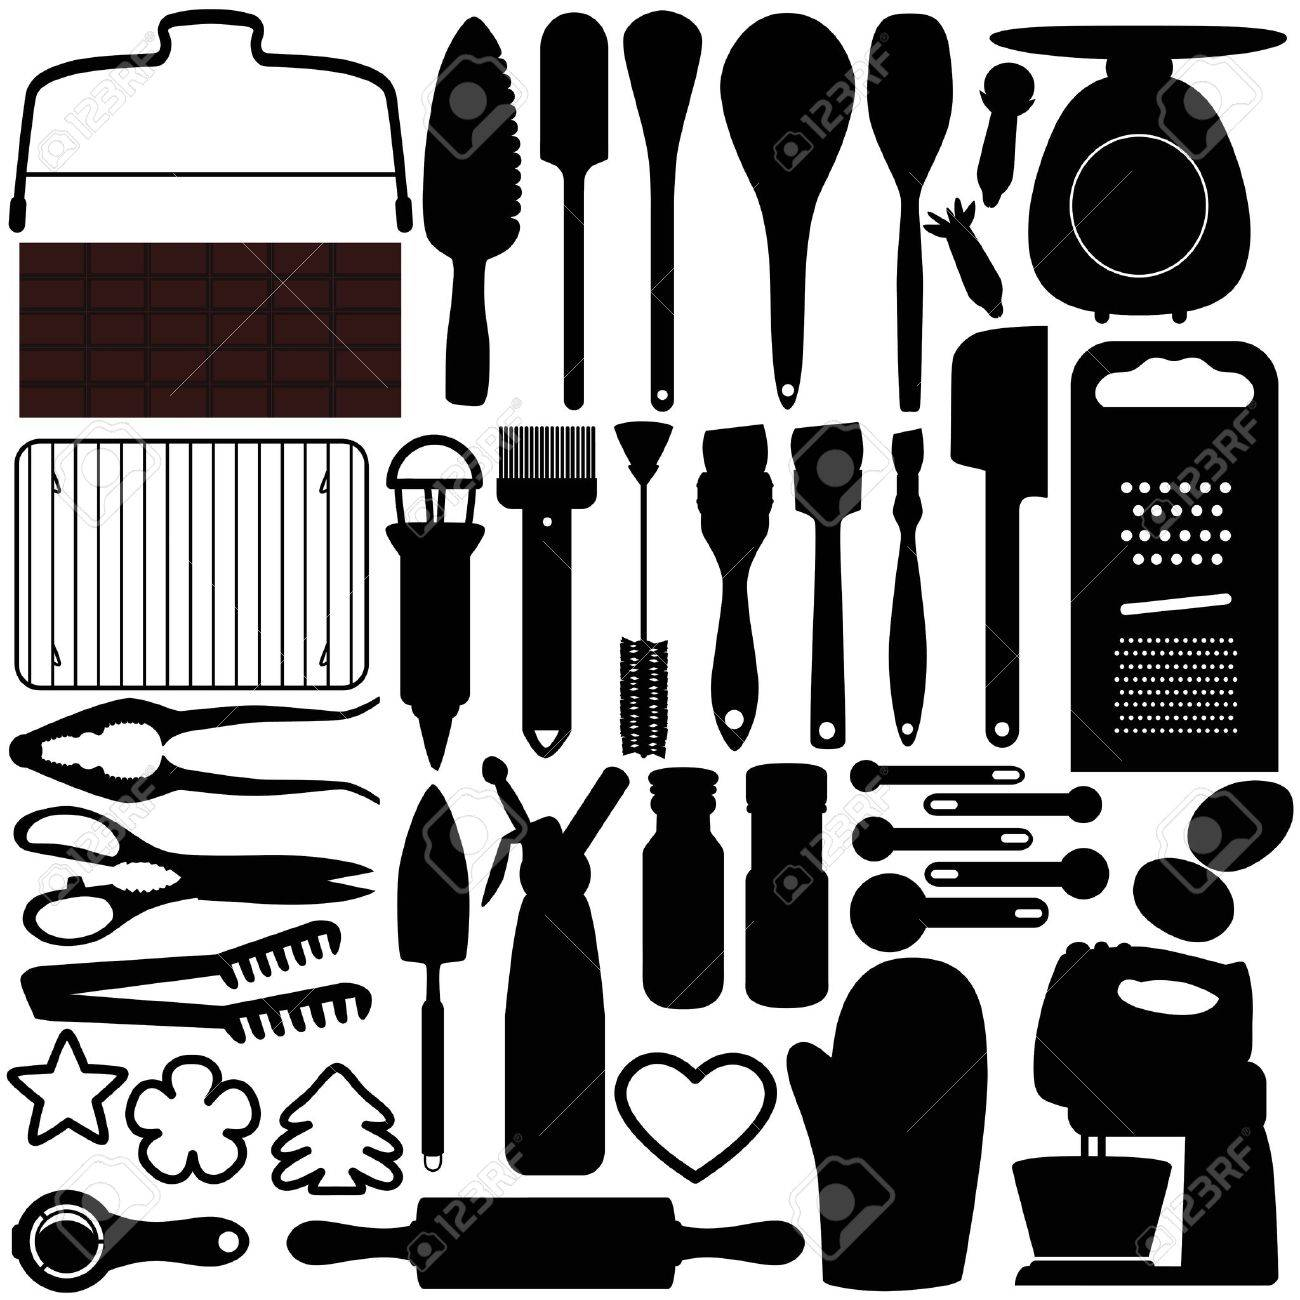 Baking Tools Vector A Silhouettes Collection Of Cooking Baking Tools Royalty Free